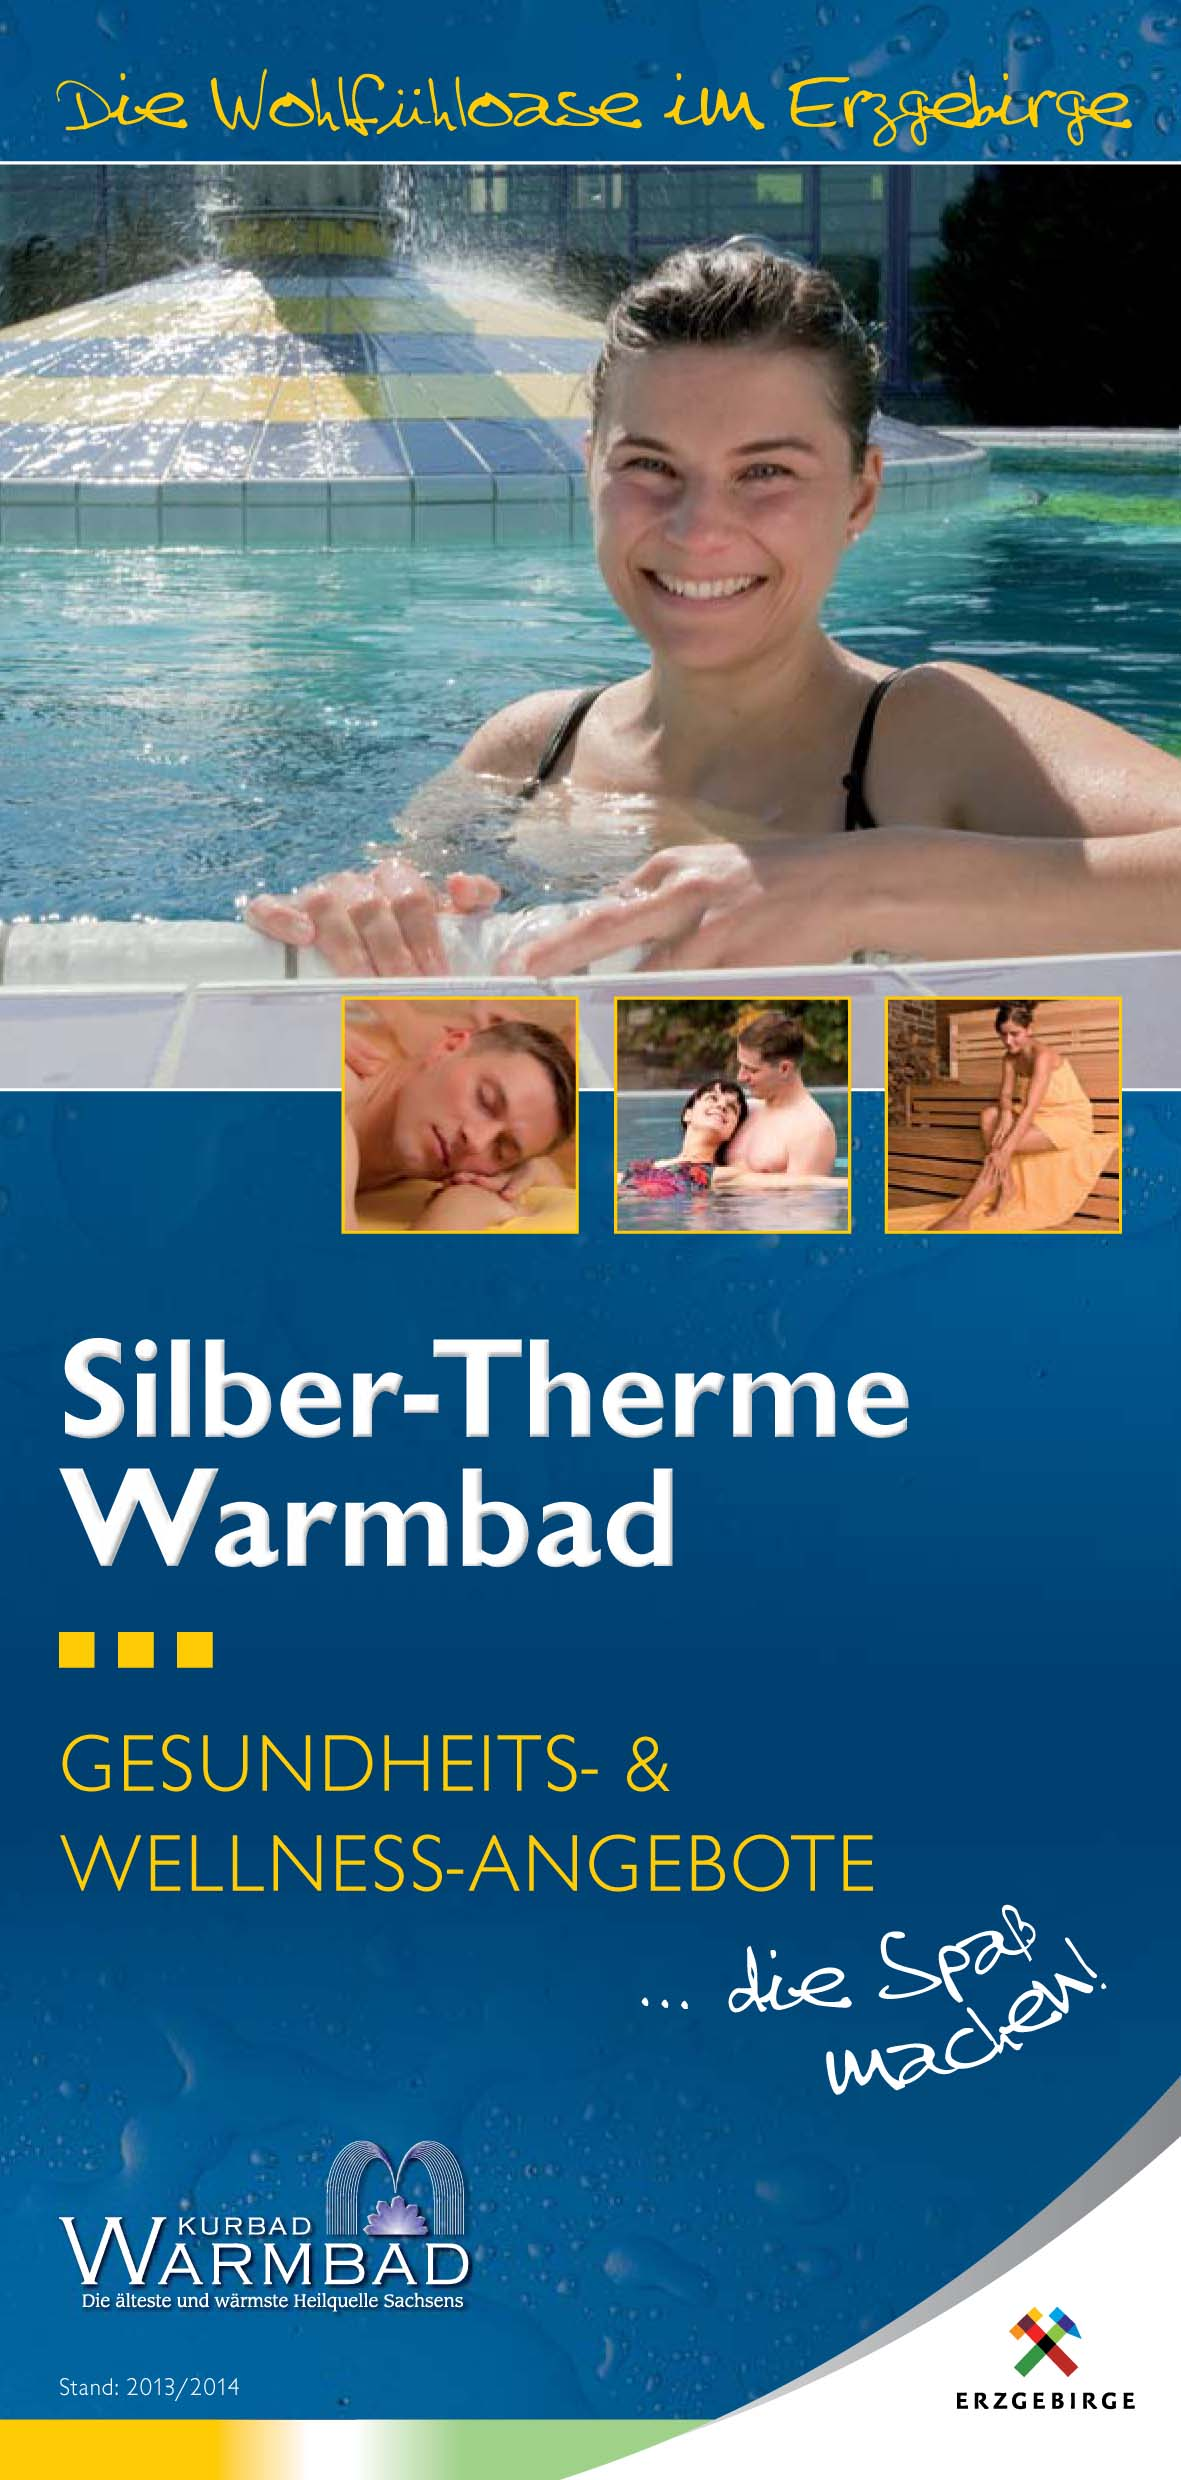 Silber-Therme